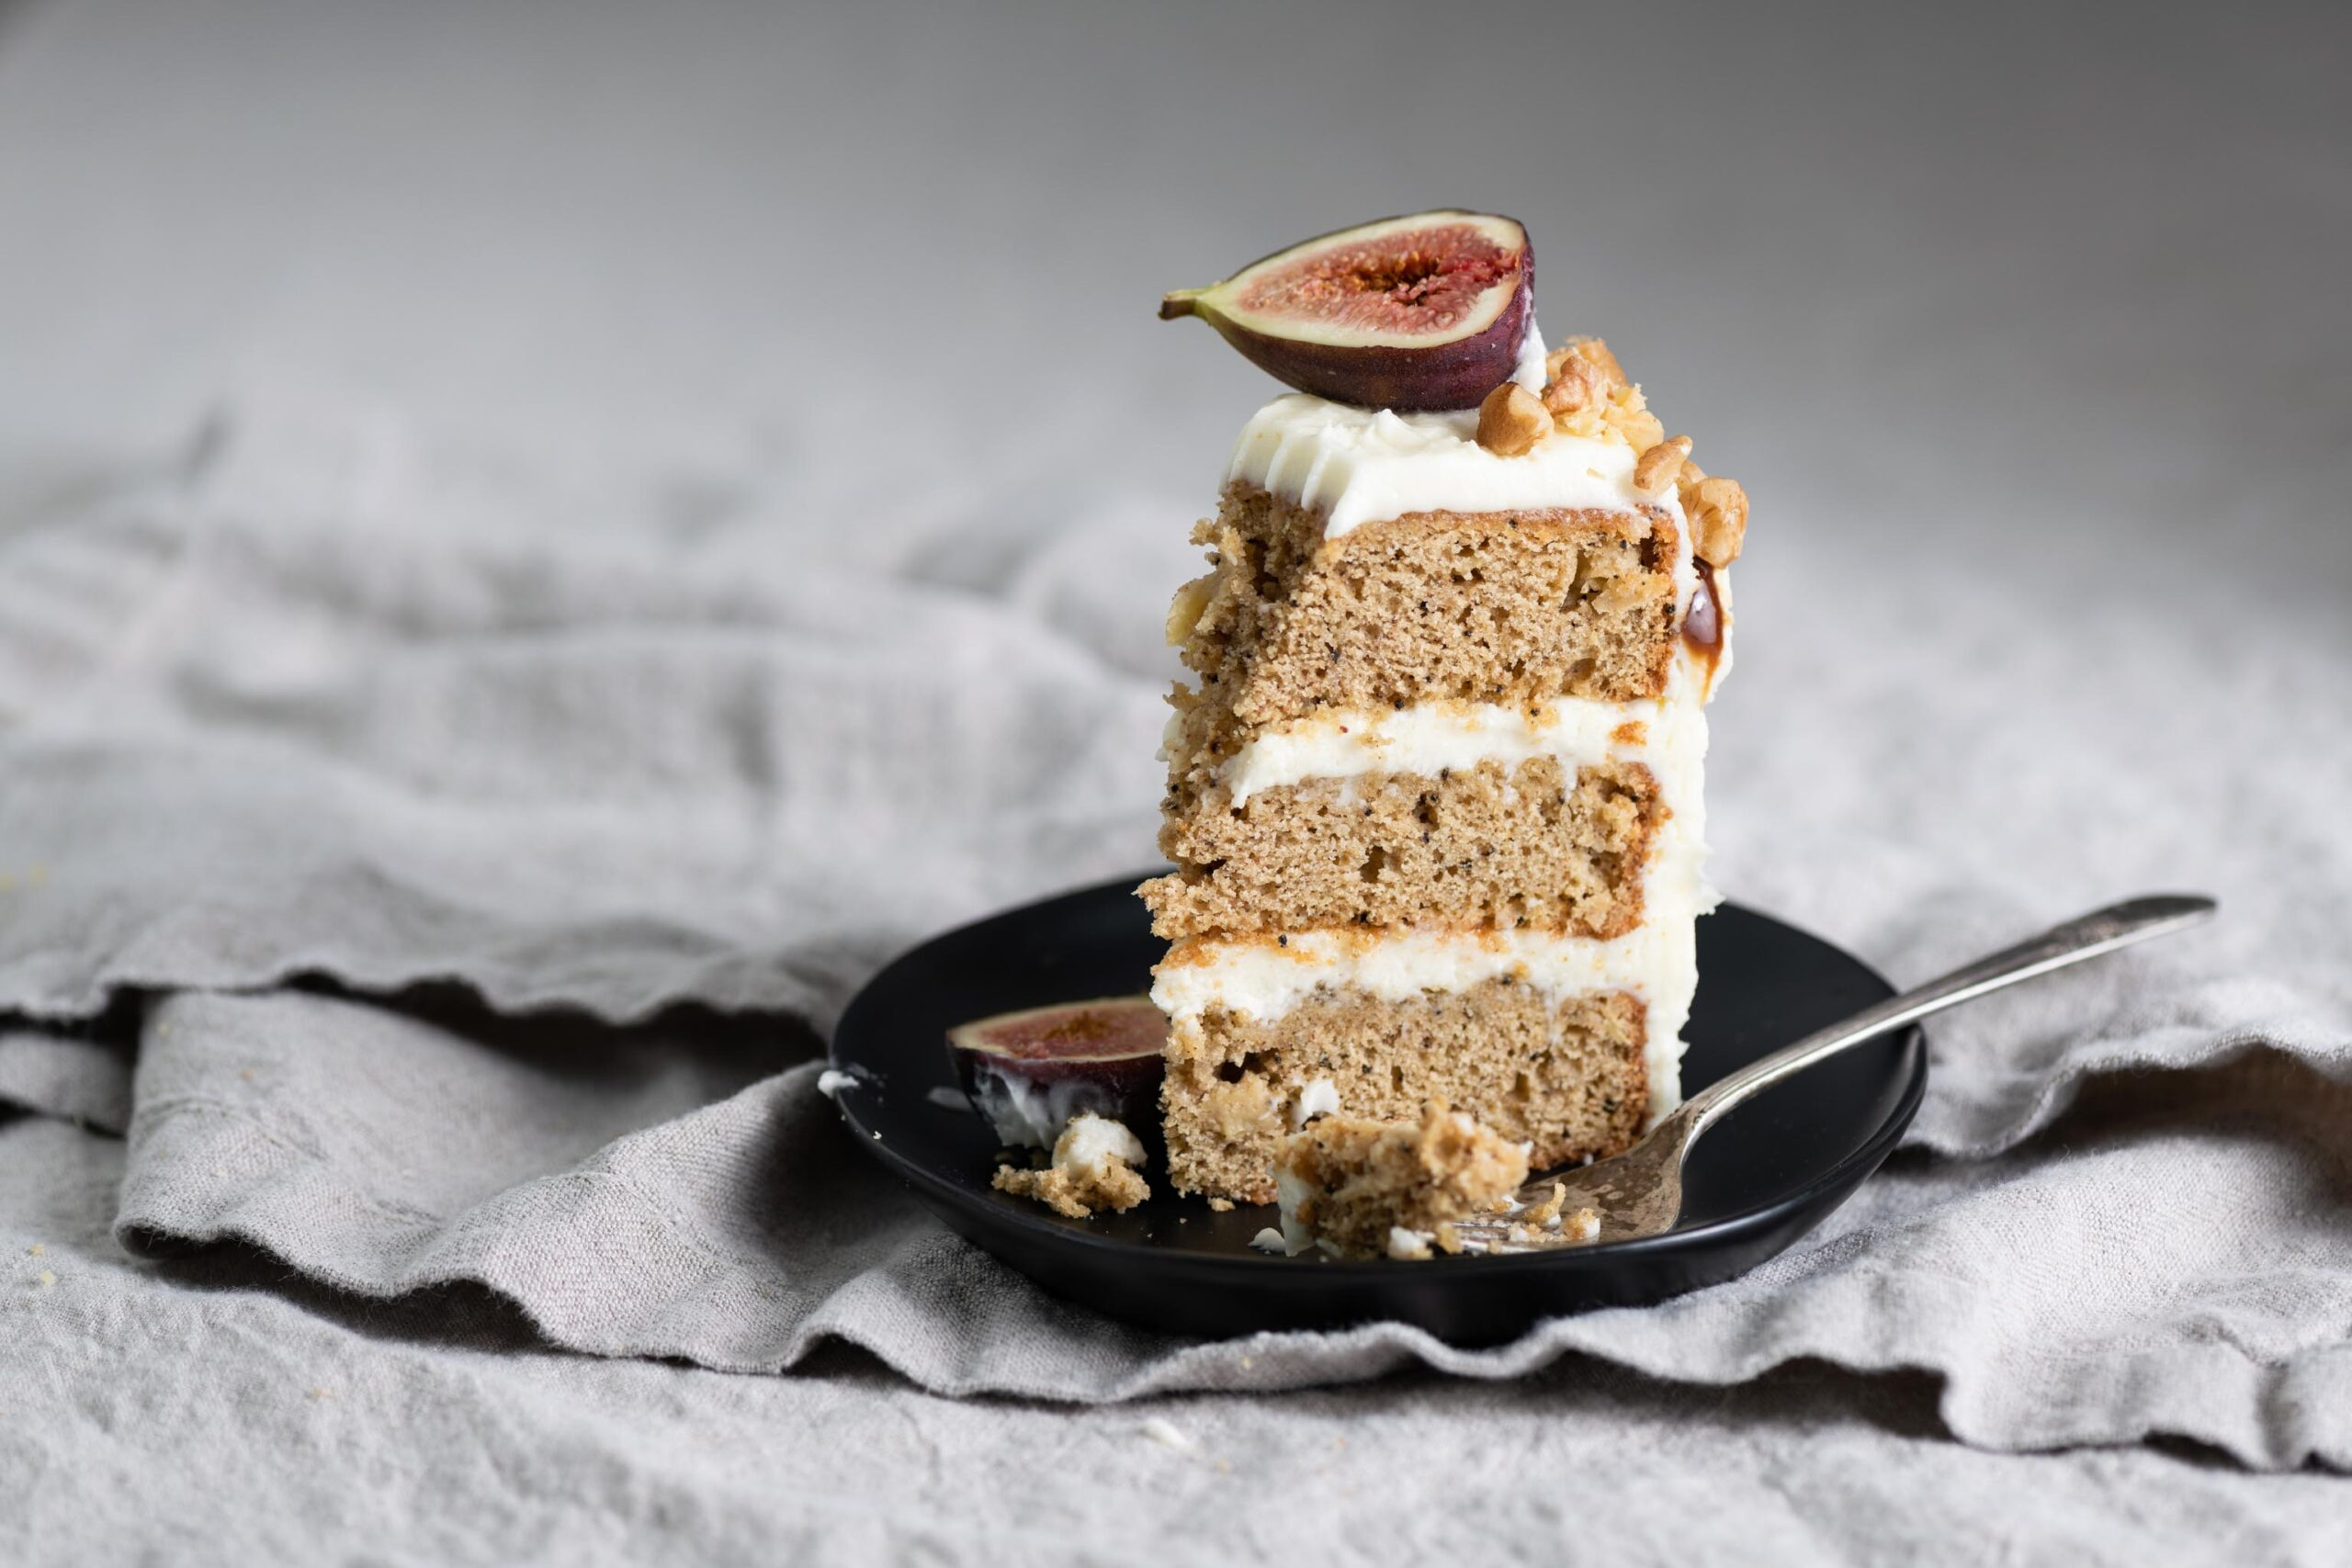 Slice of layered Apple Cake with Maple Cream Cheese Frosting